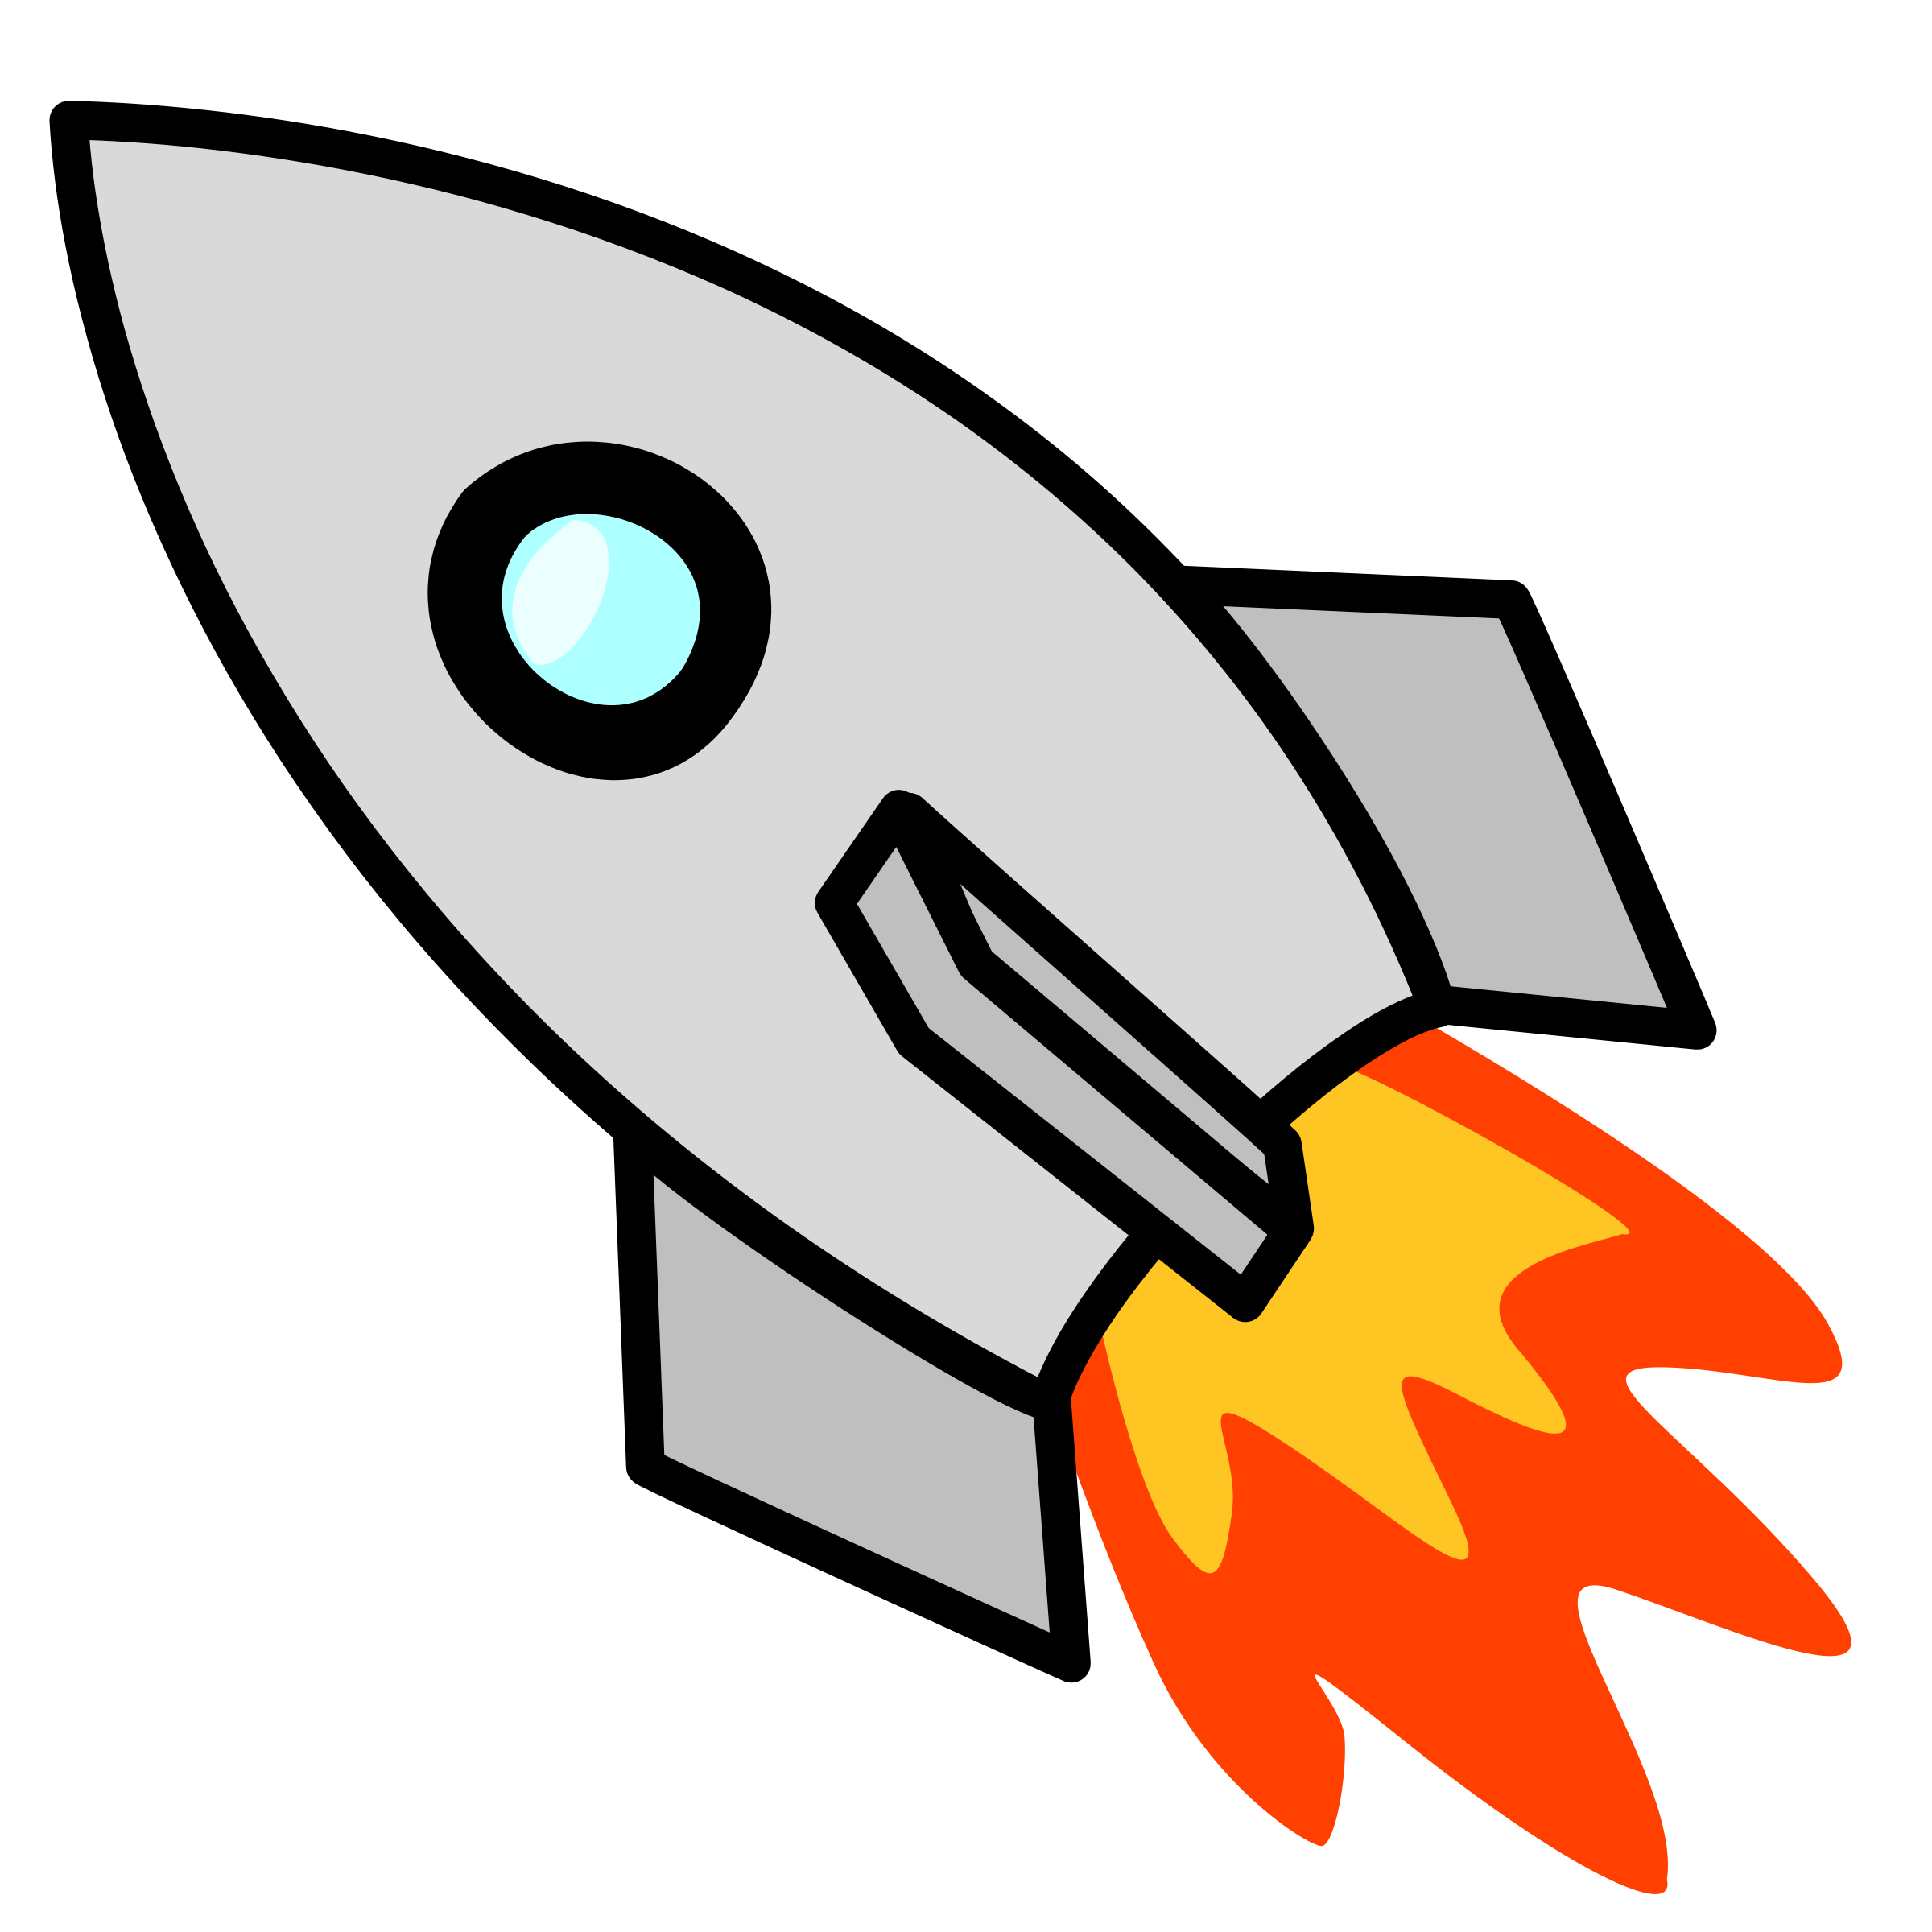 picture free download Images for cute personal. Rocket clipart.